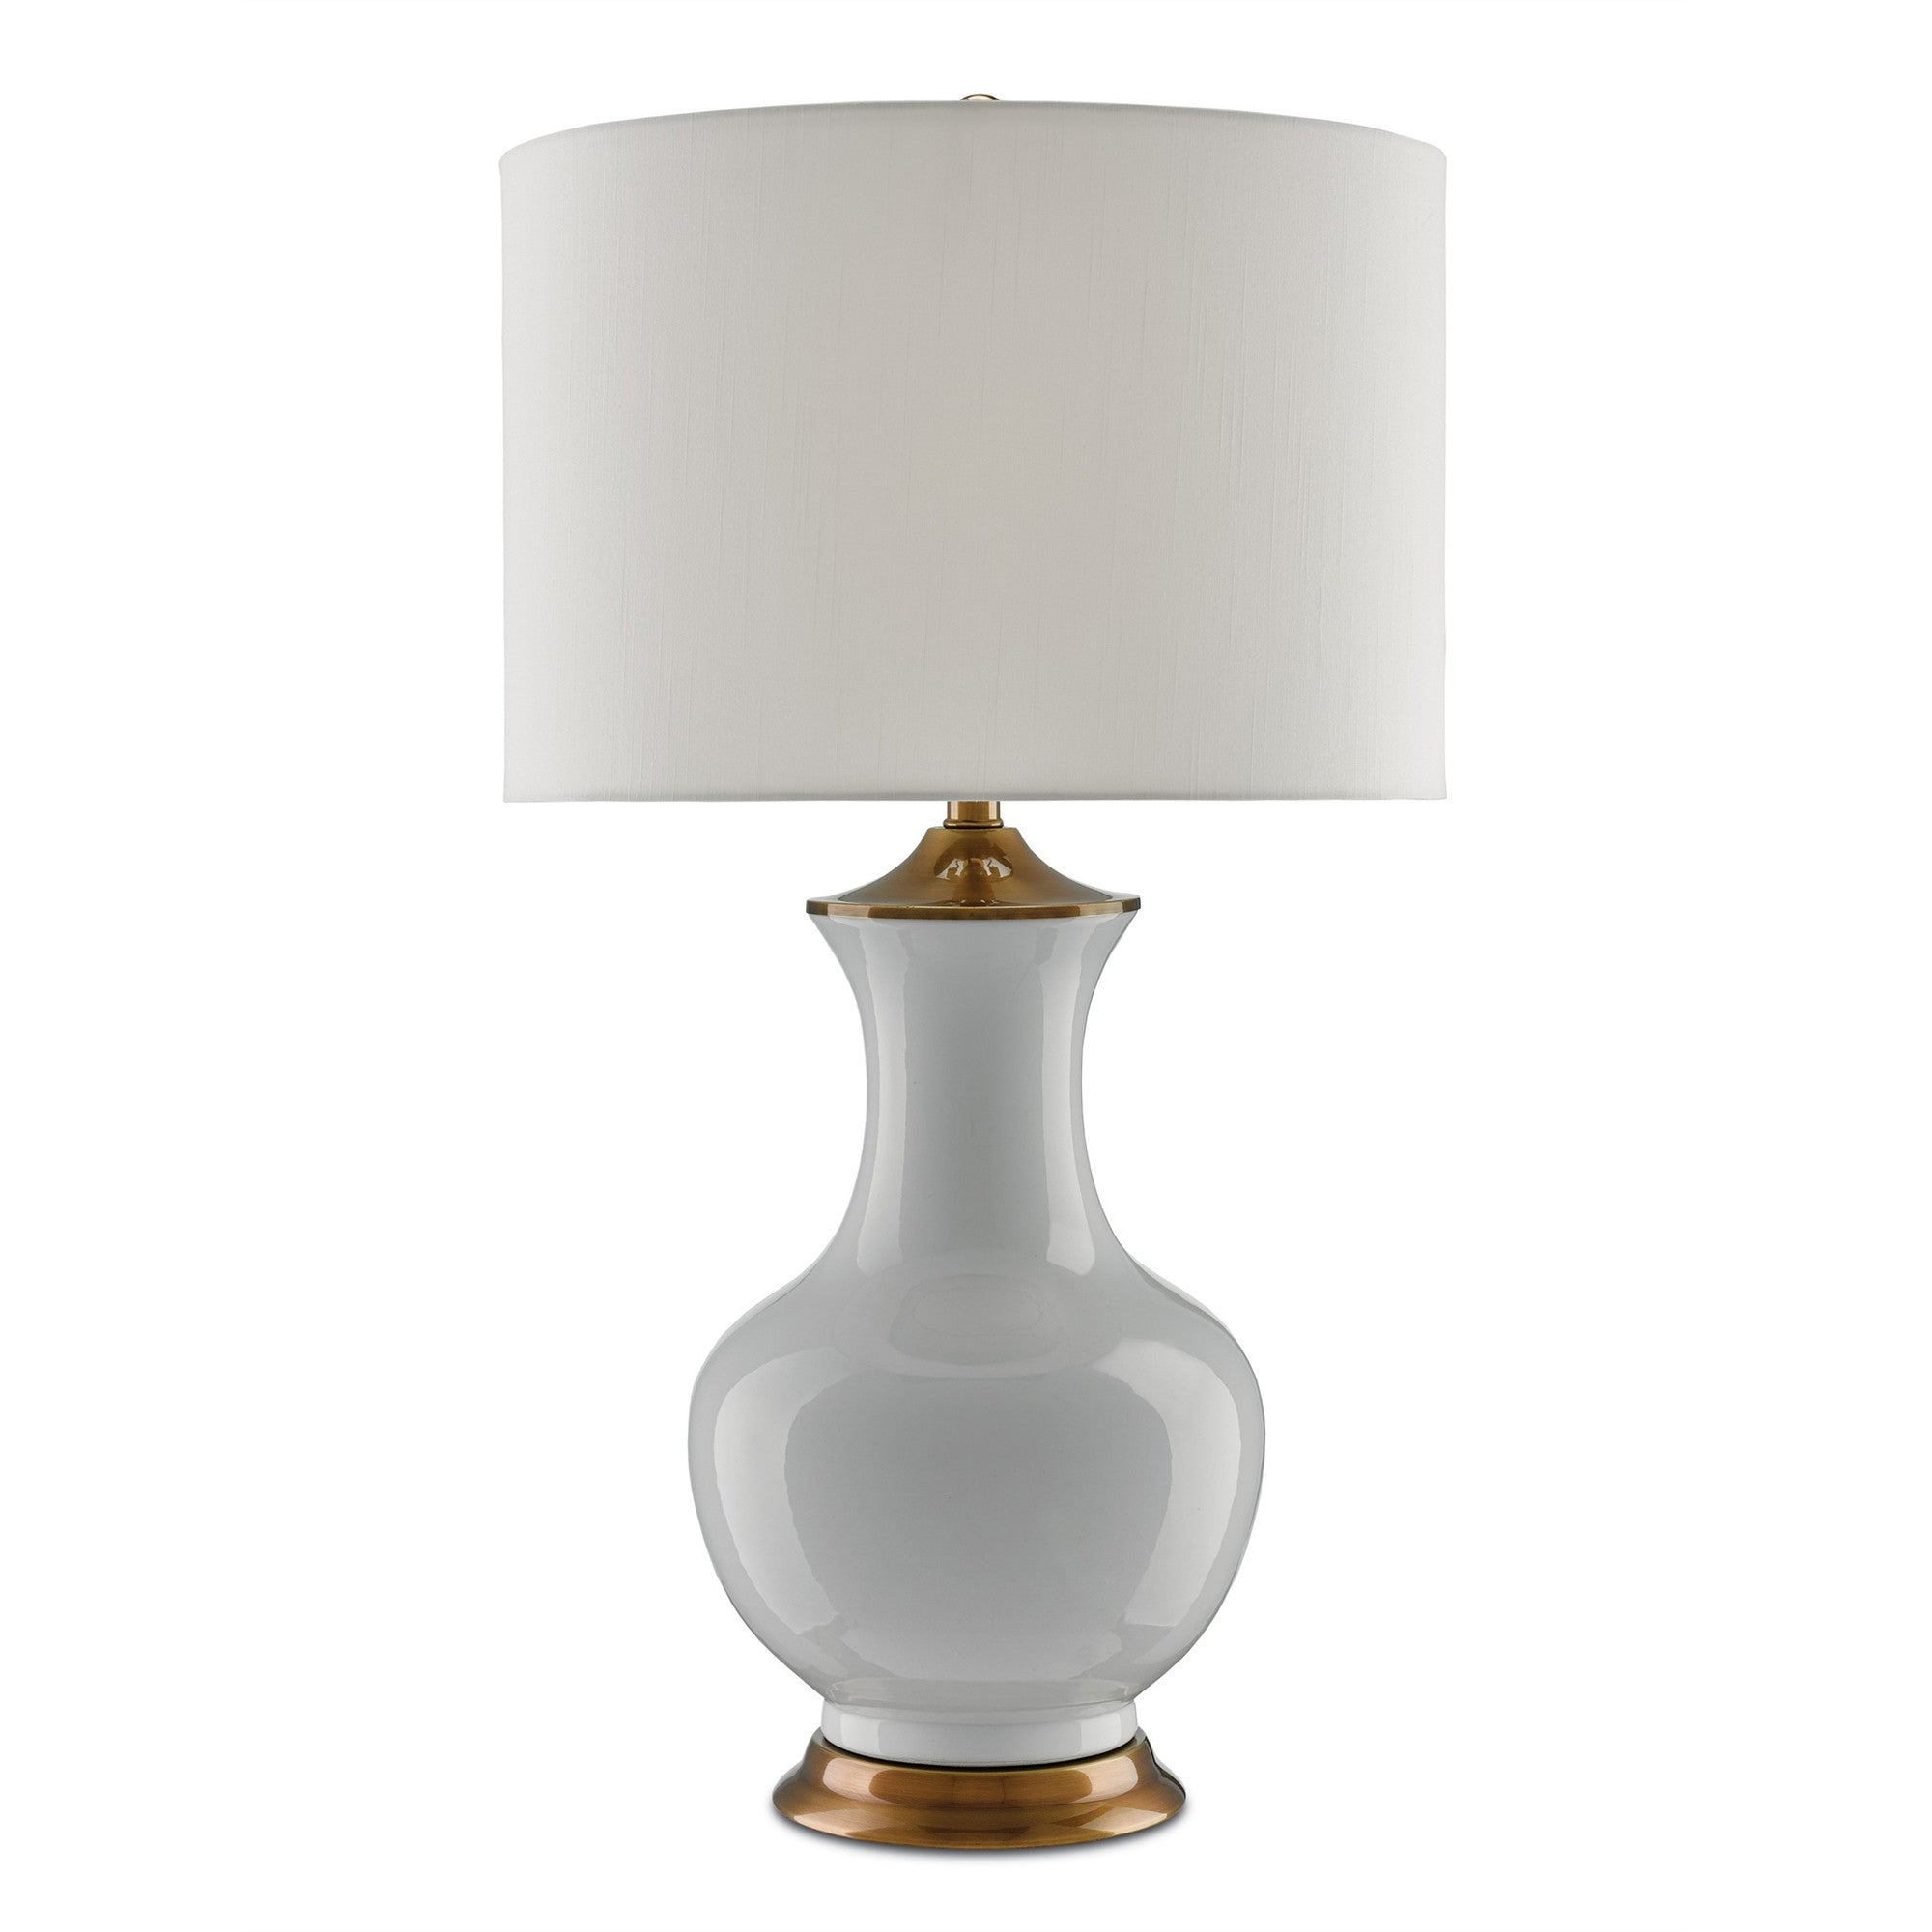 Currey and Co - Lilou Table Lamp, White